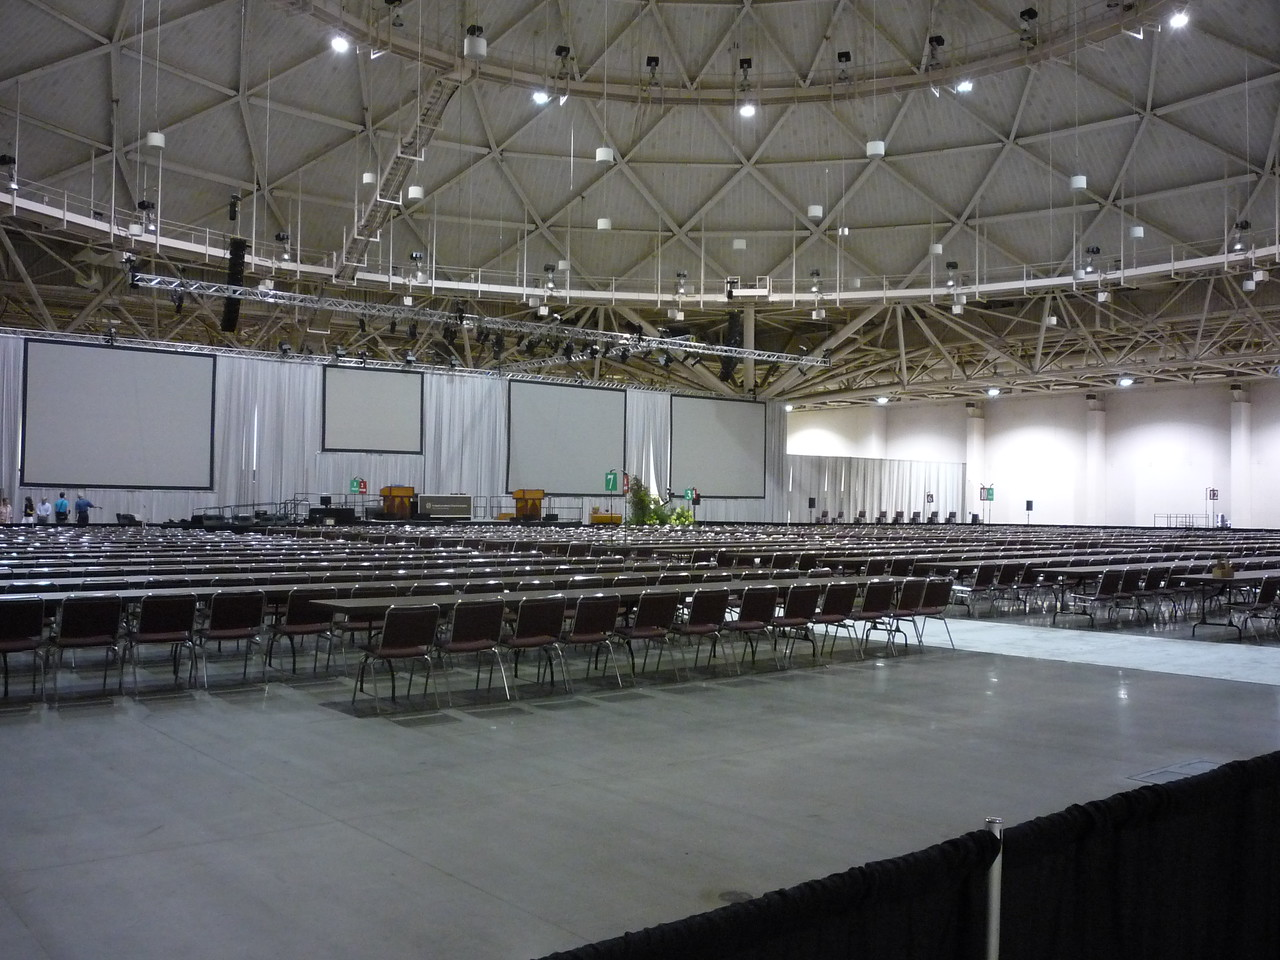 Hall E in the Minneapolis Convention Center.  This was shot on Sunday morning, August 15.